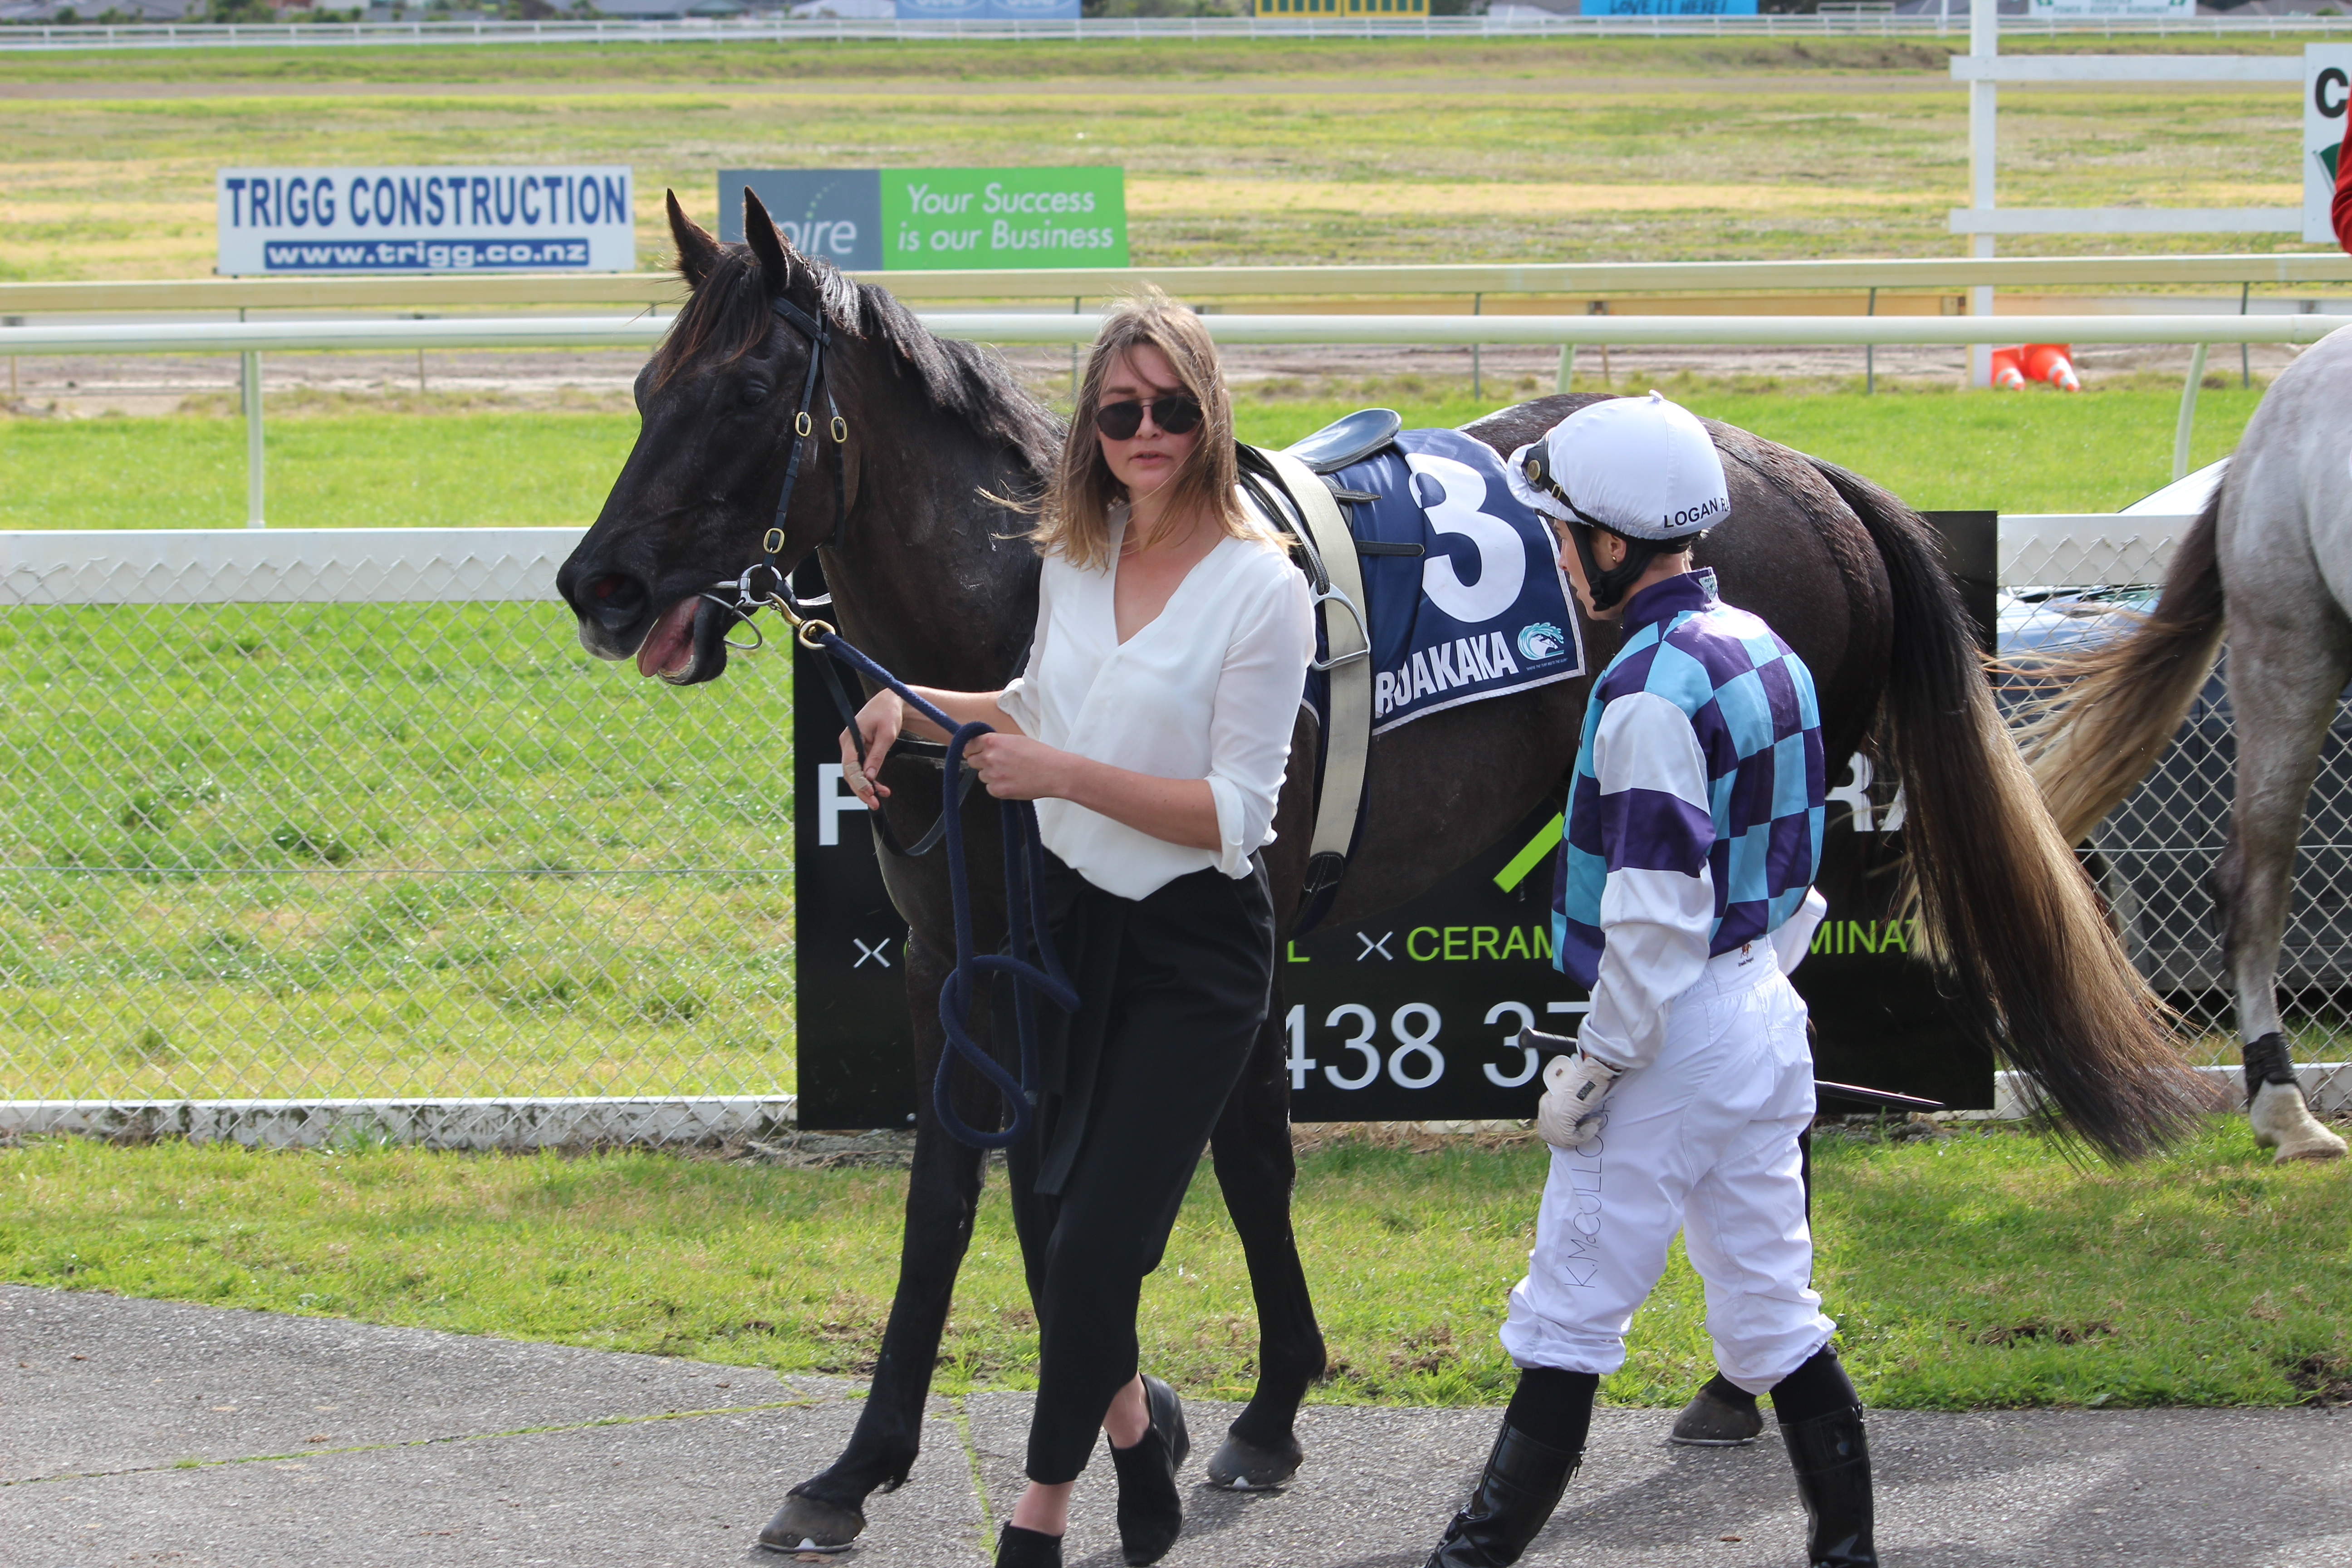 LOGAN RACING @ RUAKAKA 6TH AUGUST